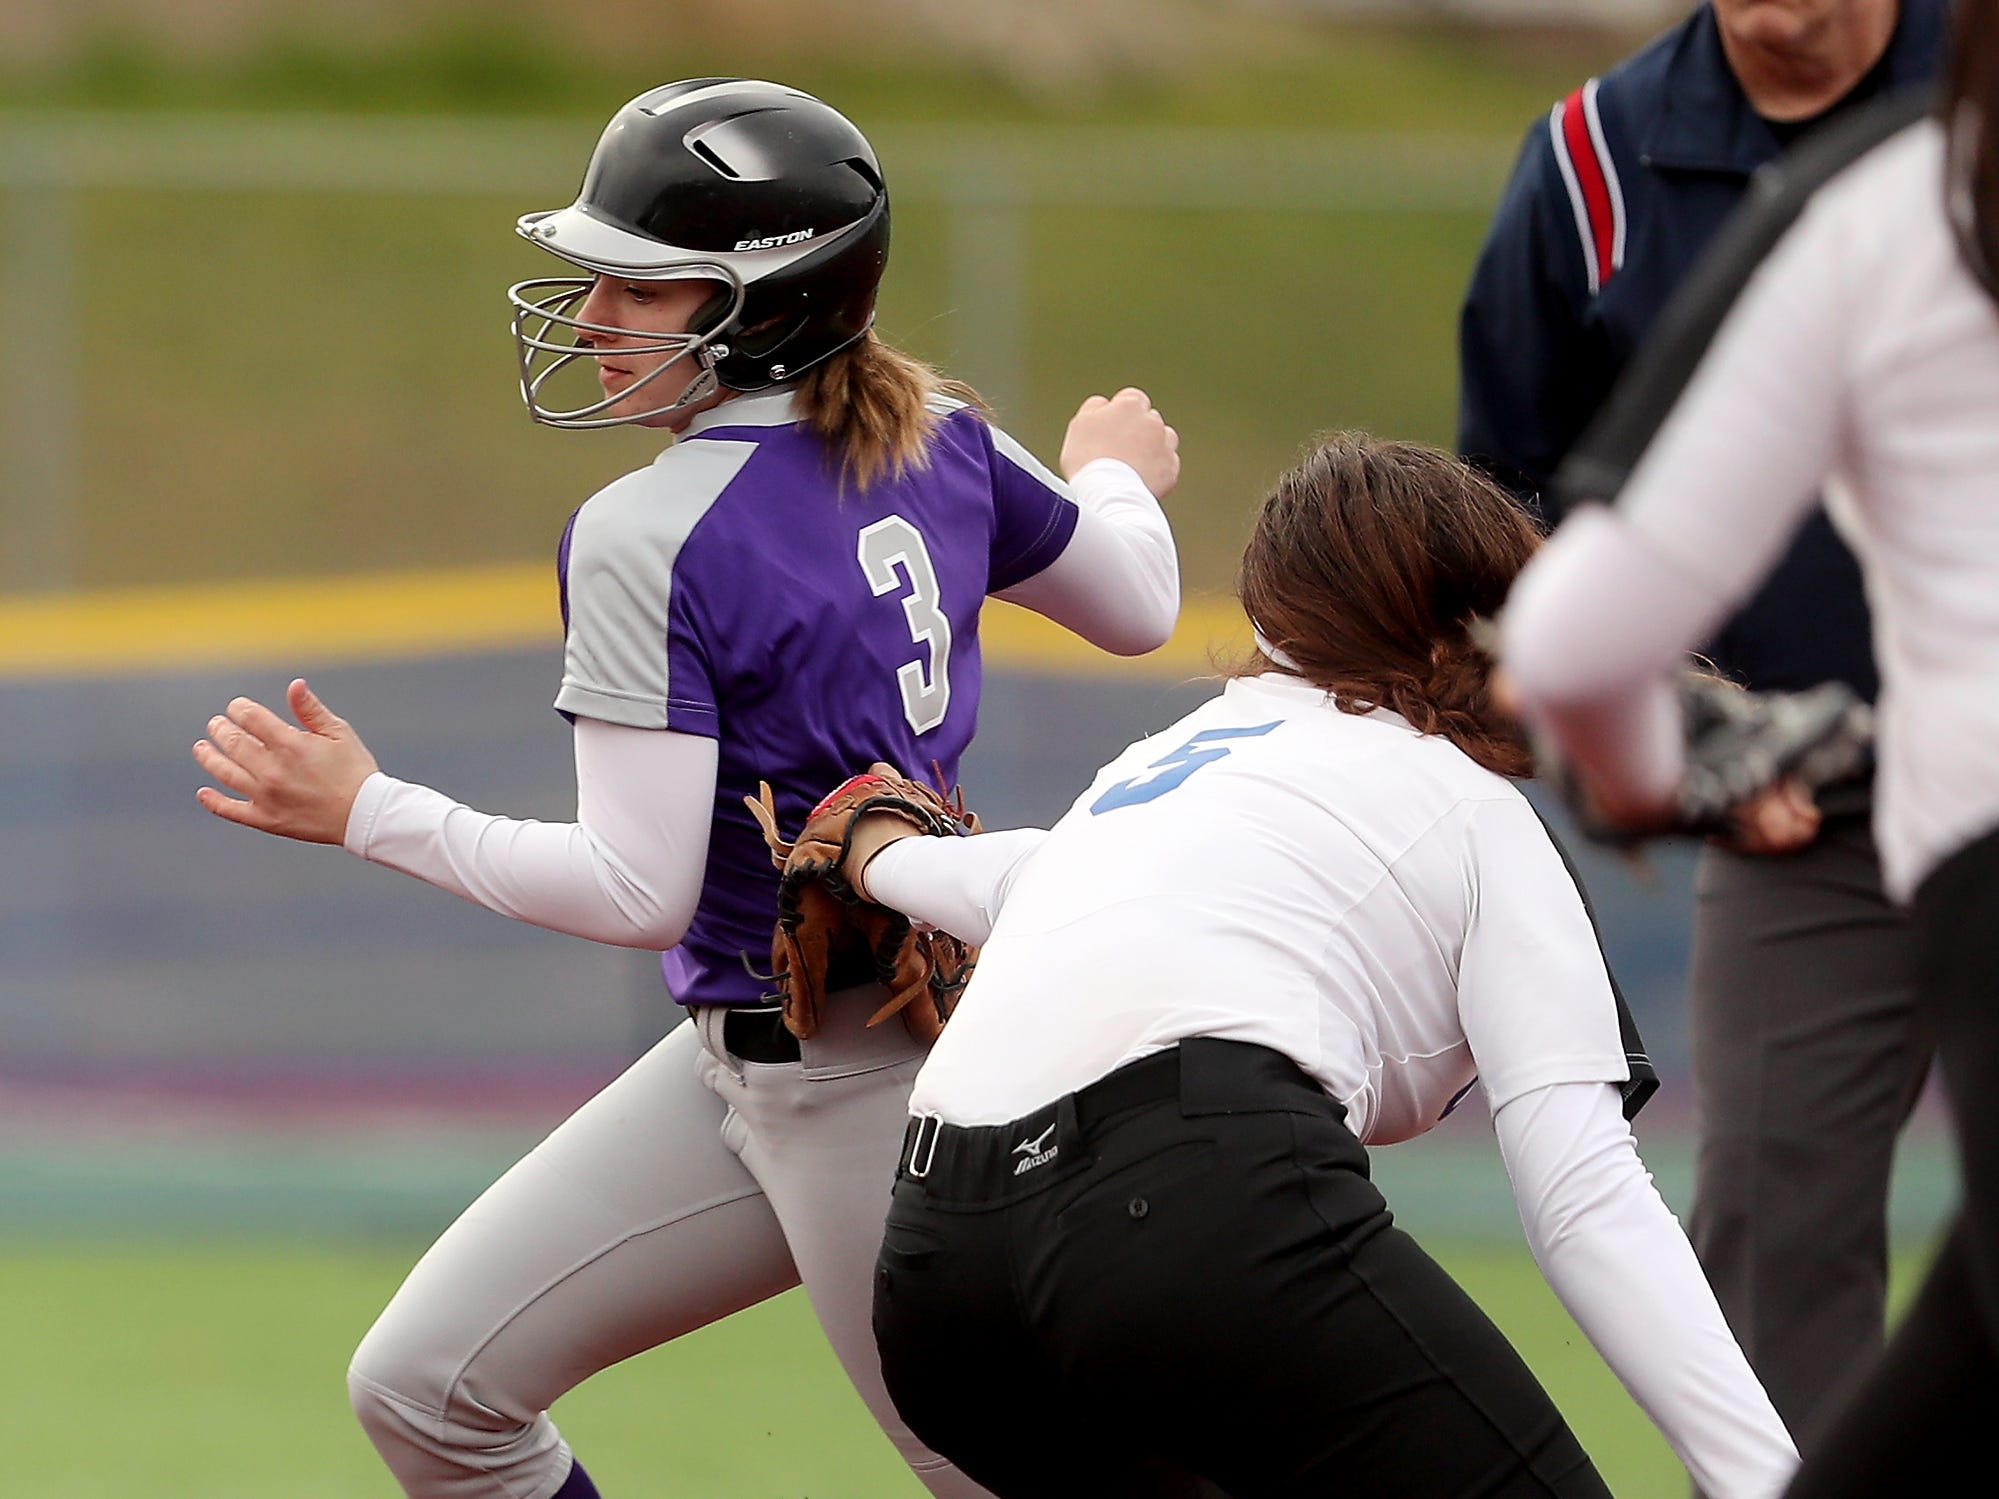 North Kitsap's Olivia Holmbery (3) is tagged out by Olympic's Vanisa Ivie at Gene Lobe Field on Wednesday, March 27, 2019. Holmbery was tagged out by Ivie.